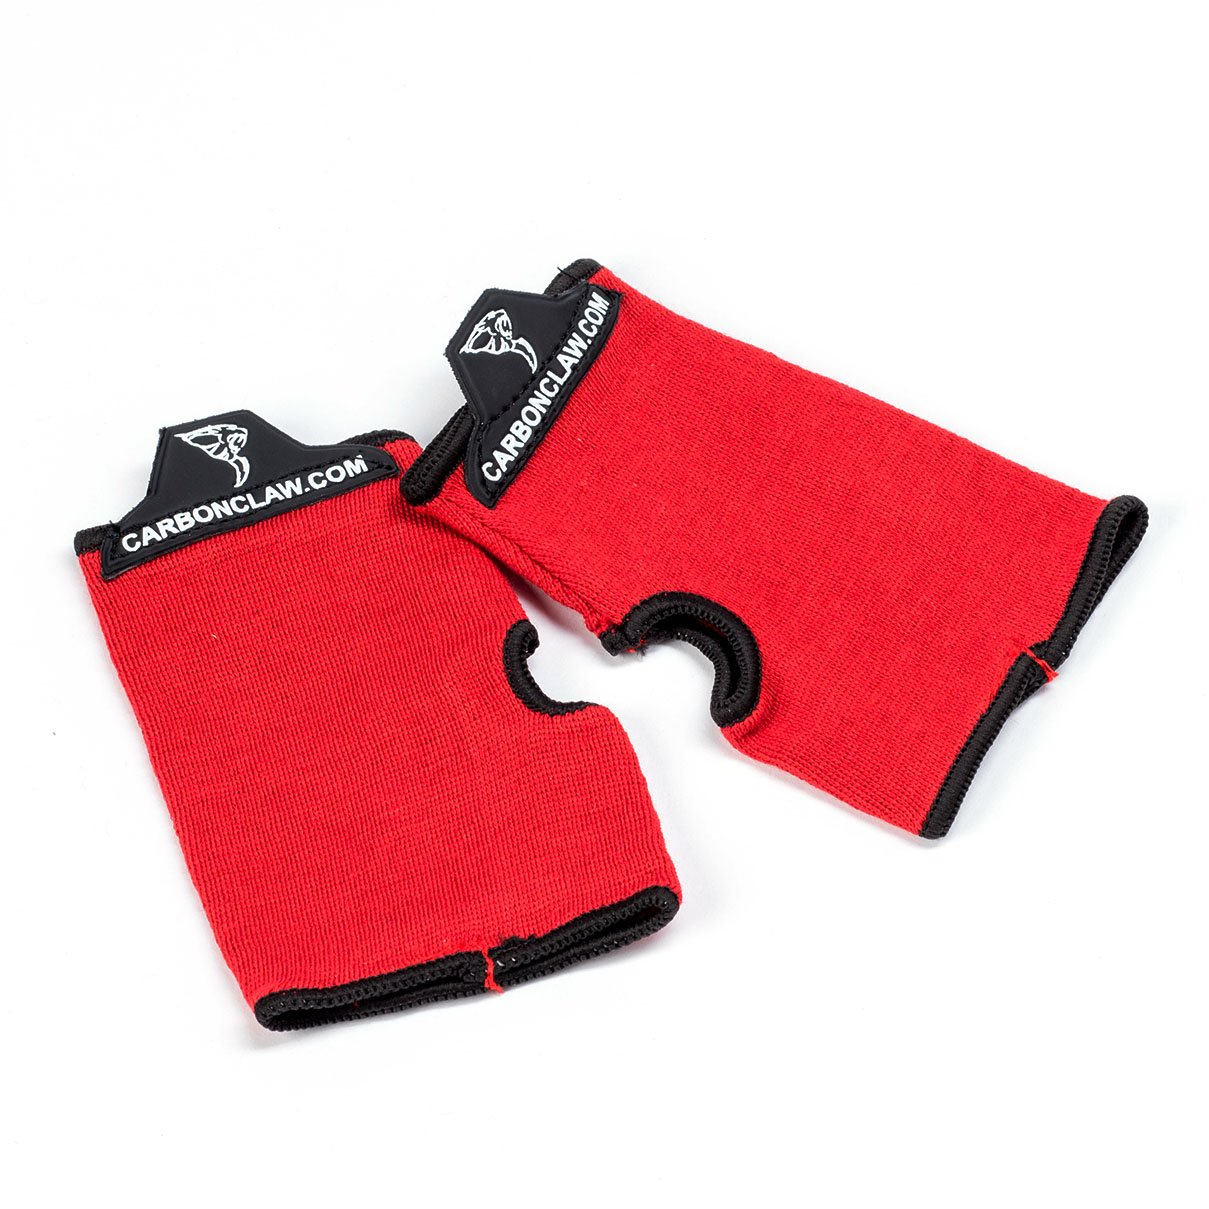 Image of Carbon Claw AERO AX-5 Elasticated Inner Wash Mitts